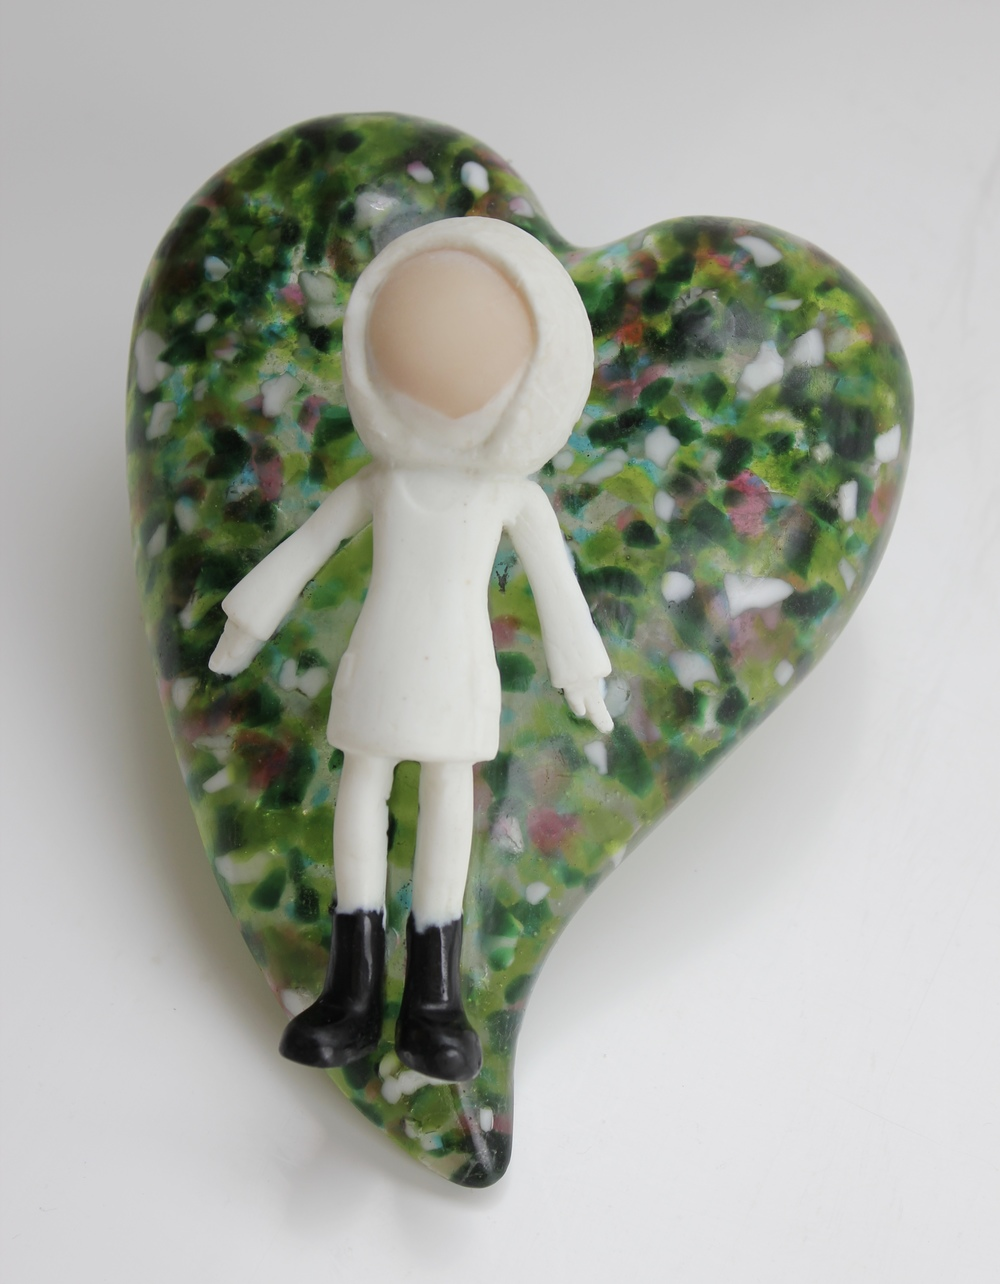 'Daydreamer' - Pate De Verre - Kiln Cast Glass